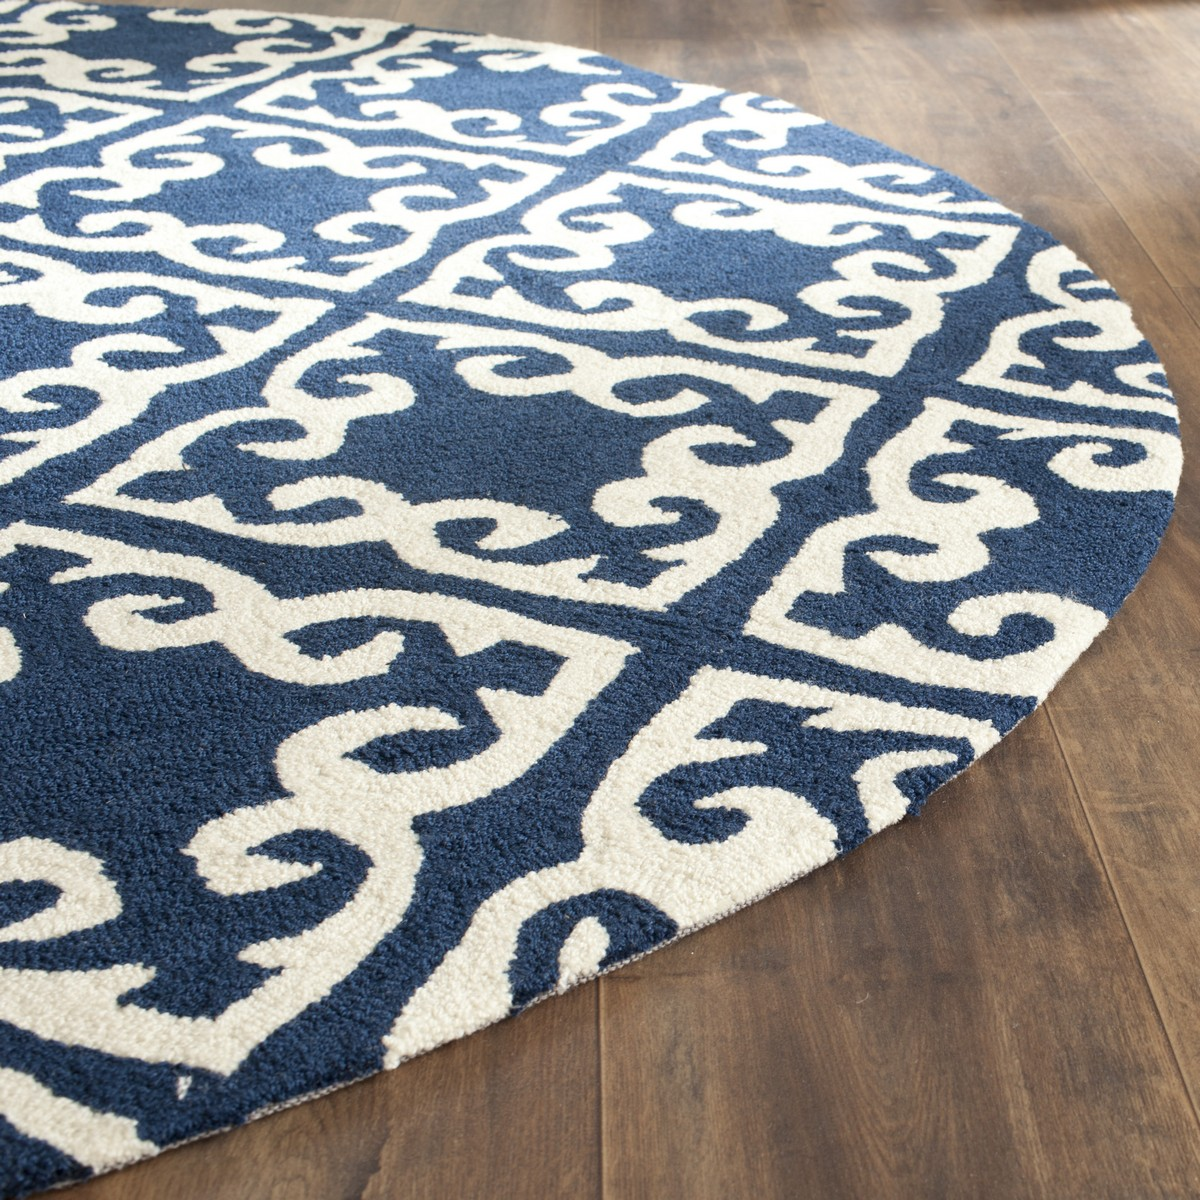 rug ezc416a easy care area rugs by safavieh